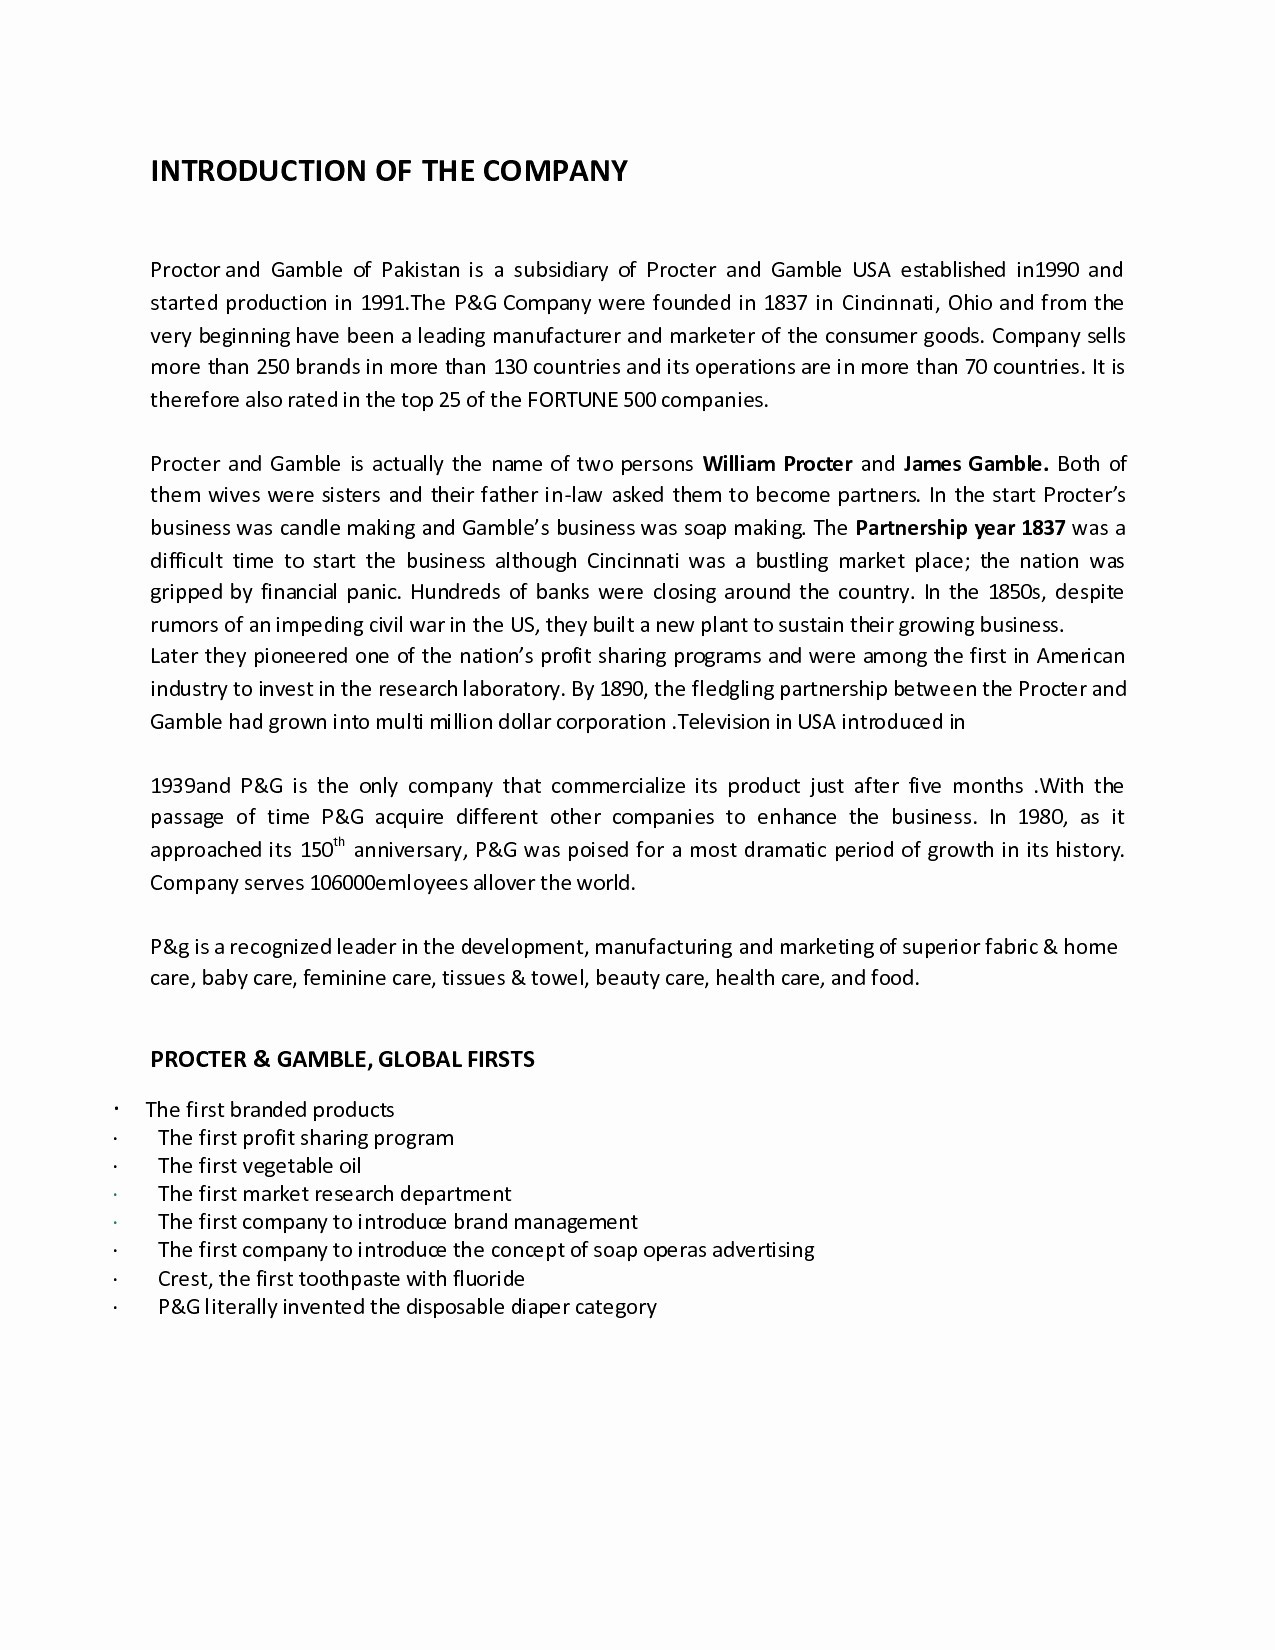 New Client Welcome Letter Template - Cover Letter Example for Job Inspirationa New How Do You Address A